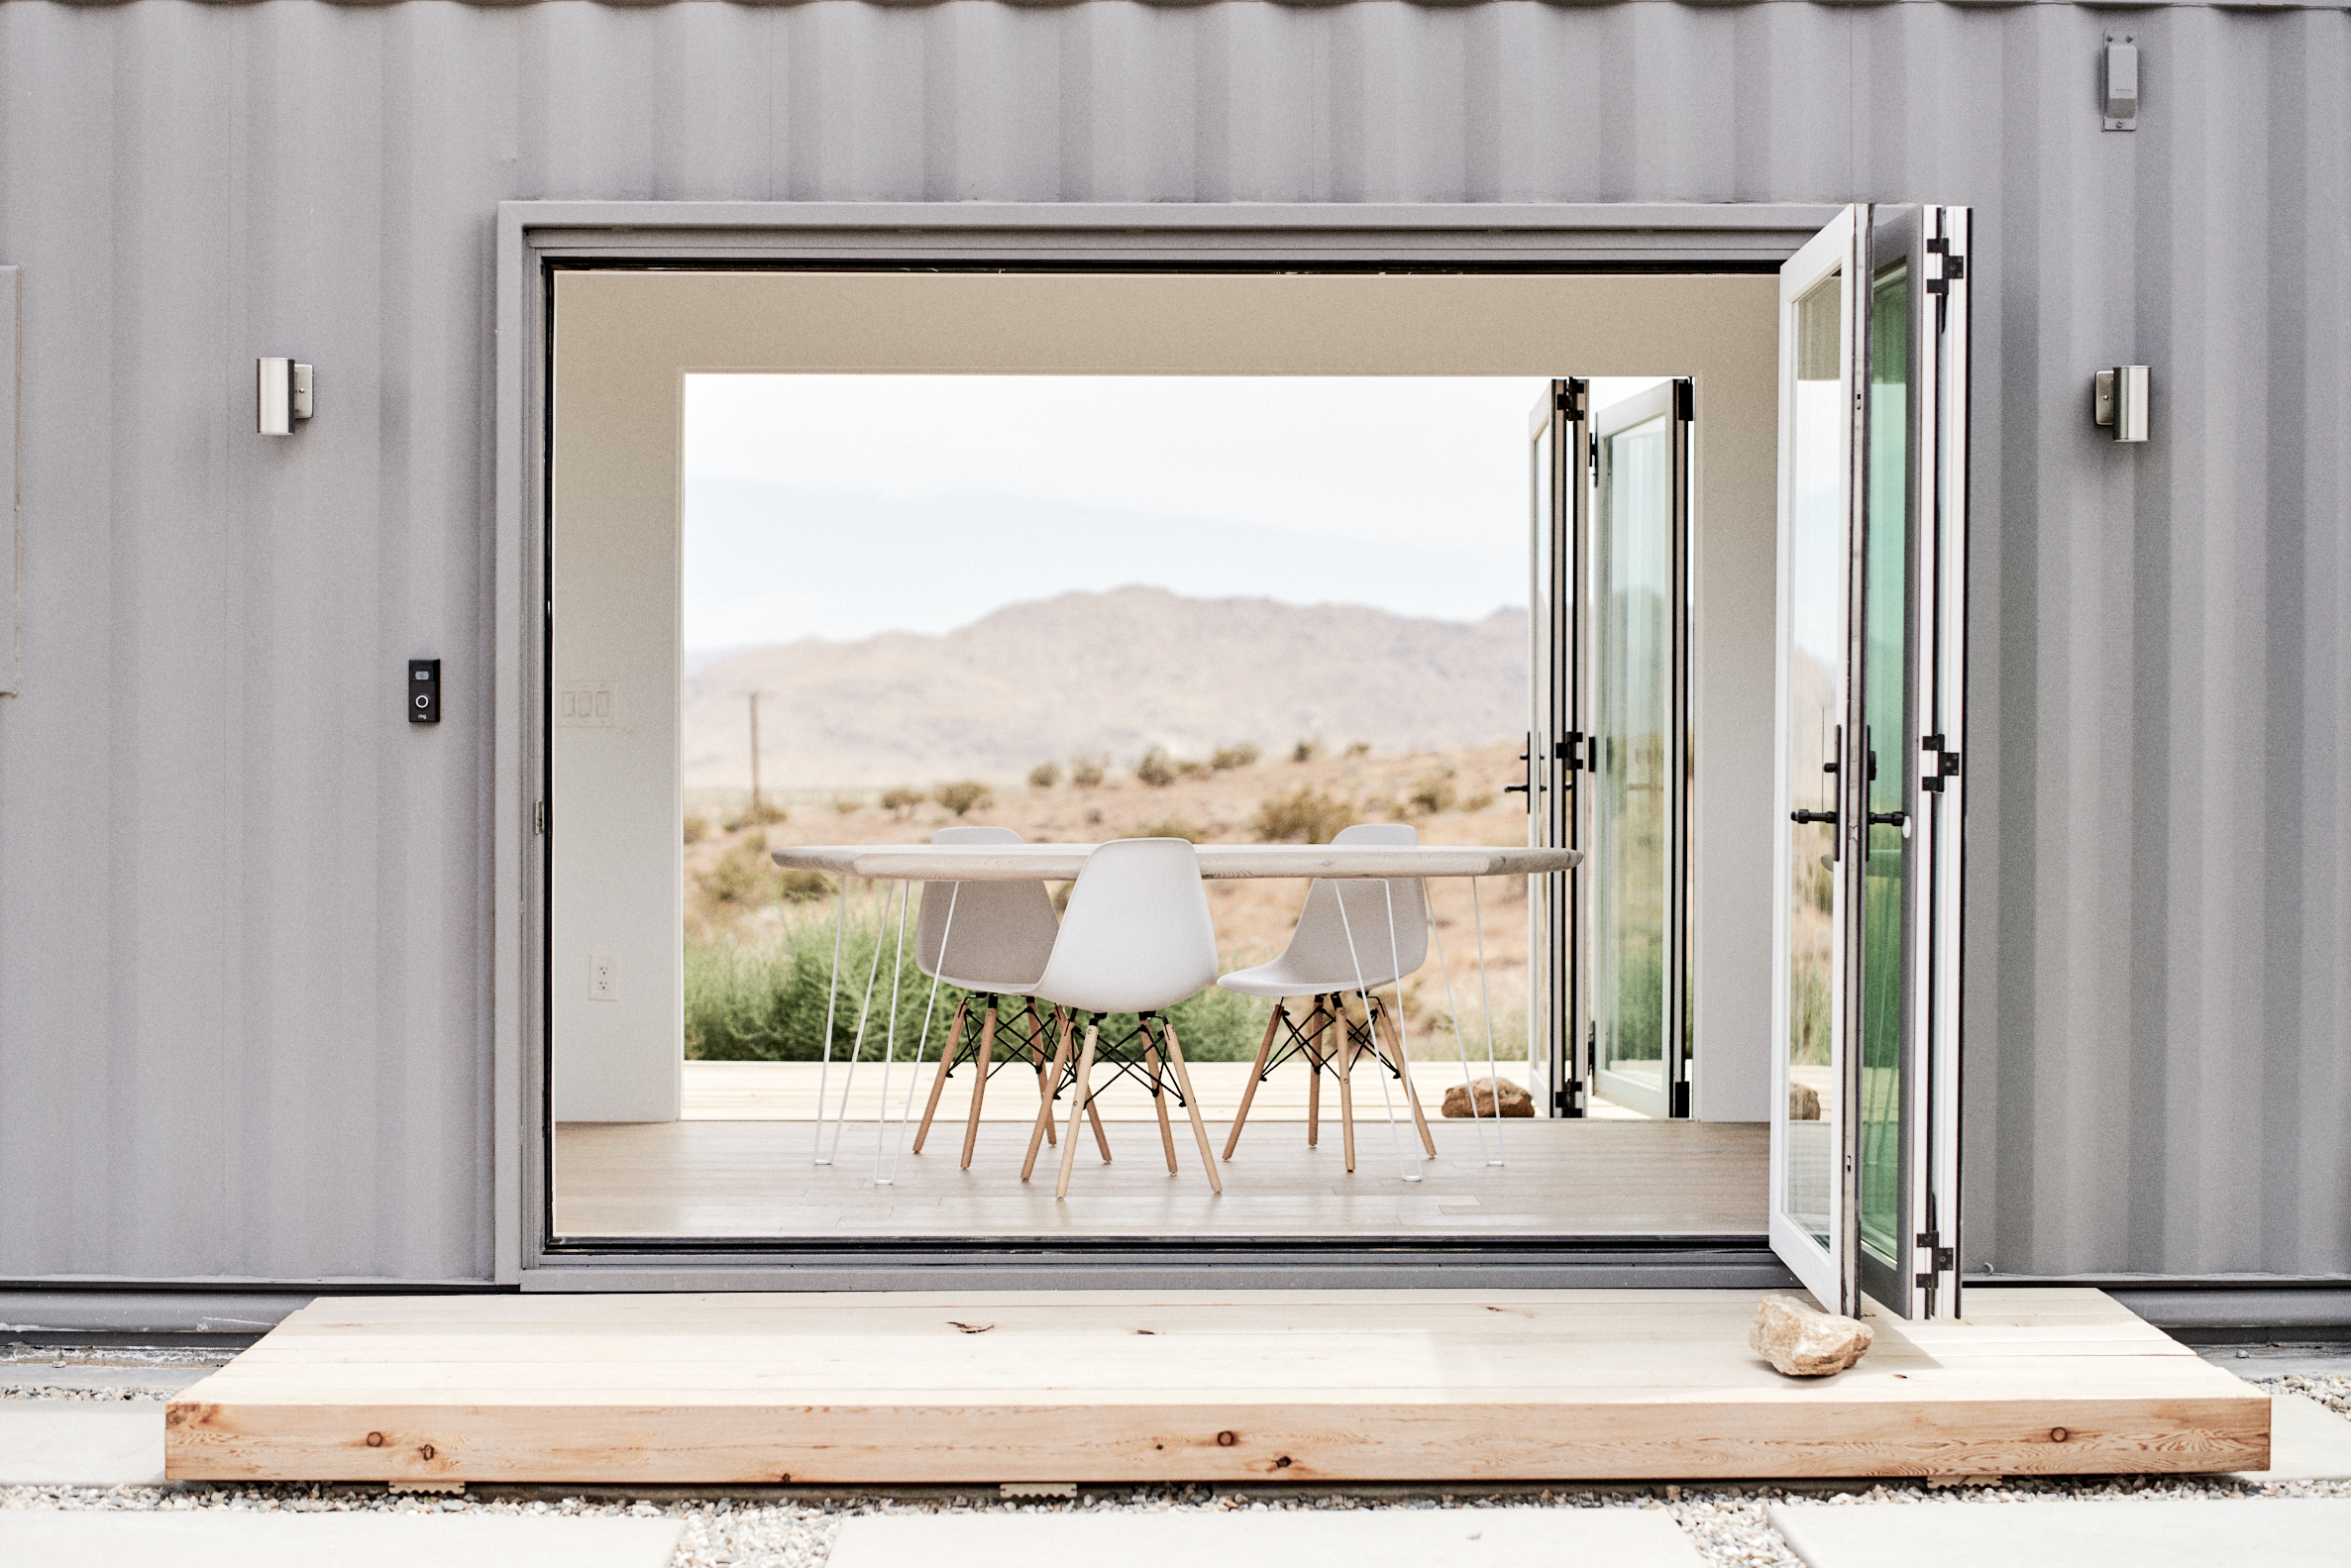 Shipping container house is a light and airy take on desert living